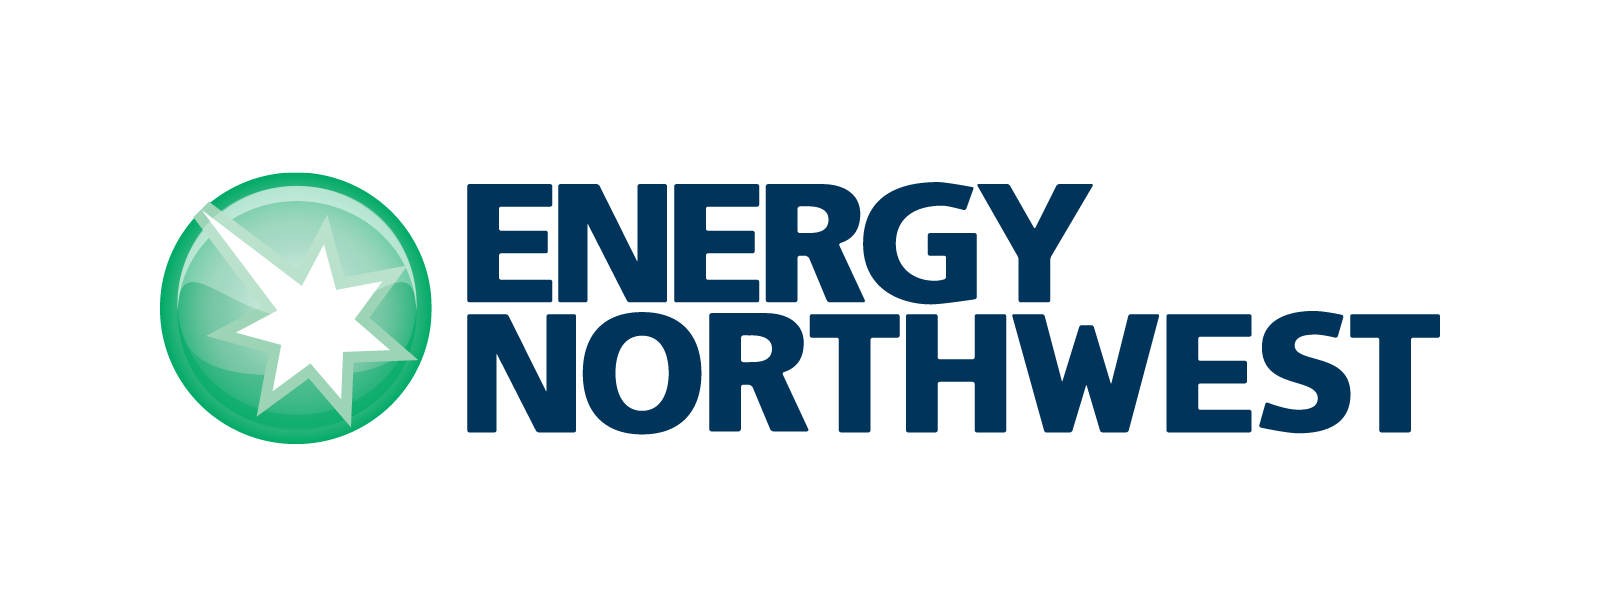 Energy Northwest logo